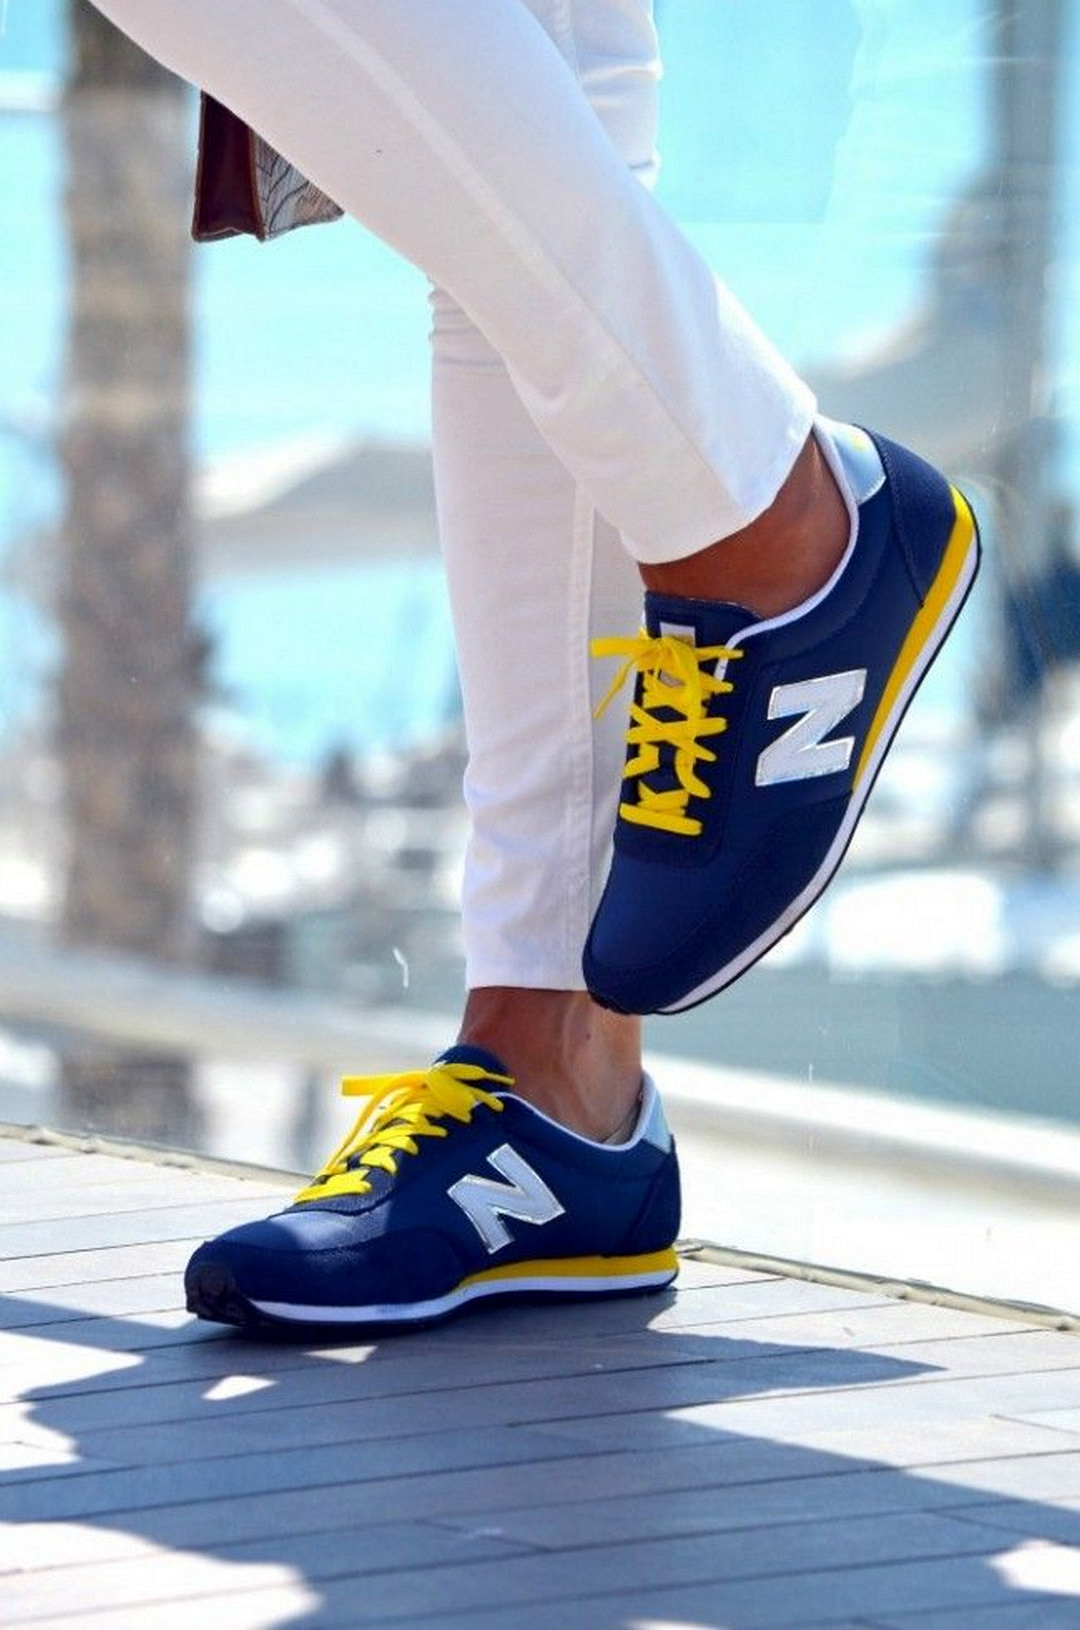 a7412e6406add 213 Ultimate New Balance Shoes Designs https   www.designlisticle.com